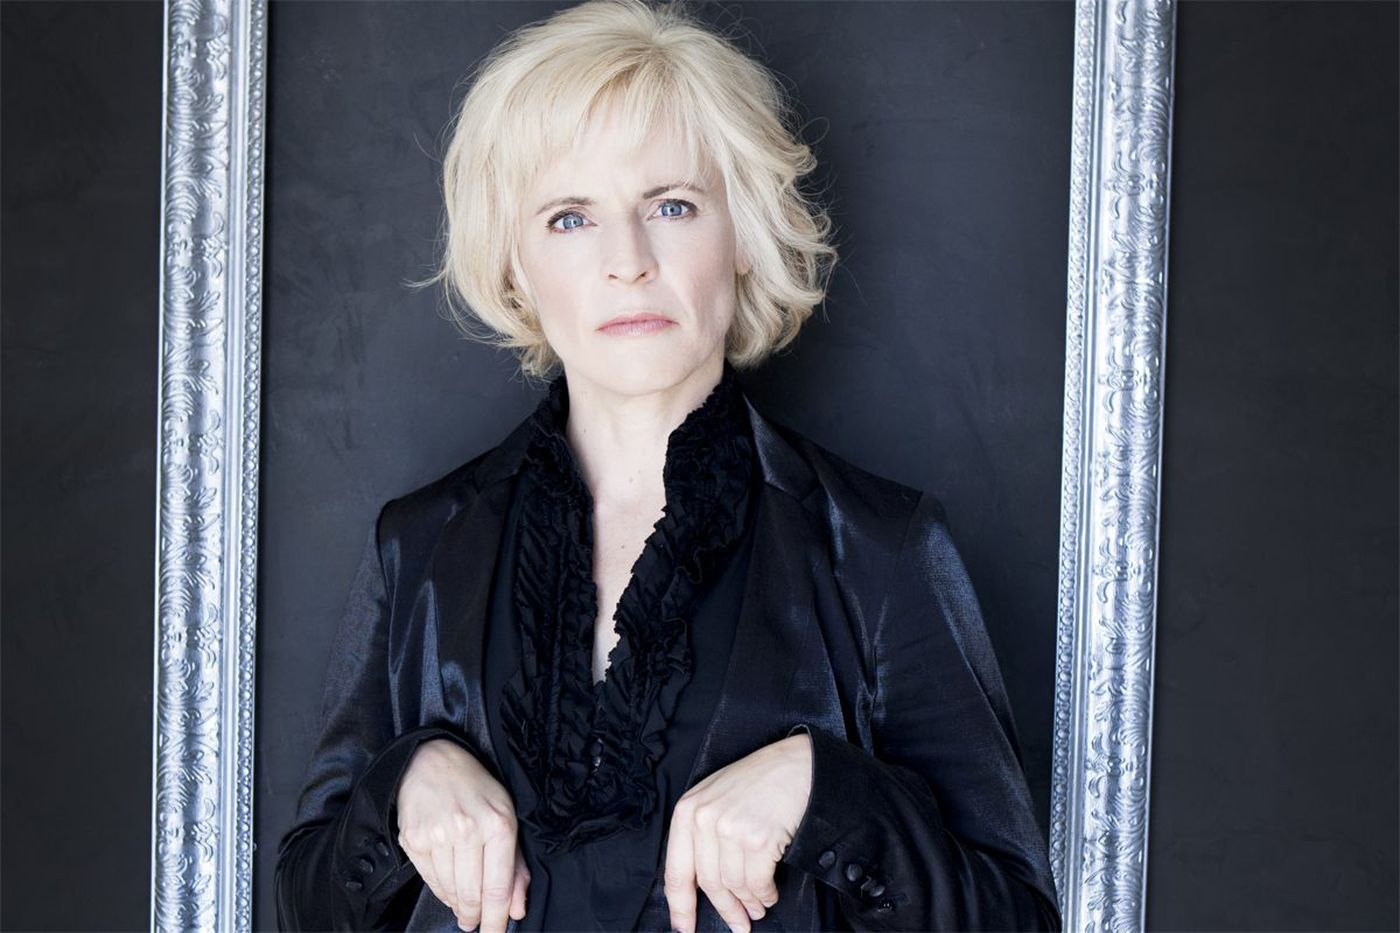 Comedian Maria Bamford has a Philly connection, but that's not why she's coming here